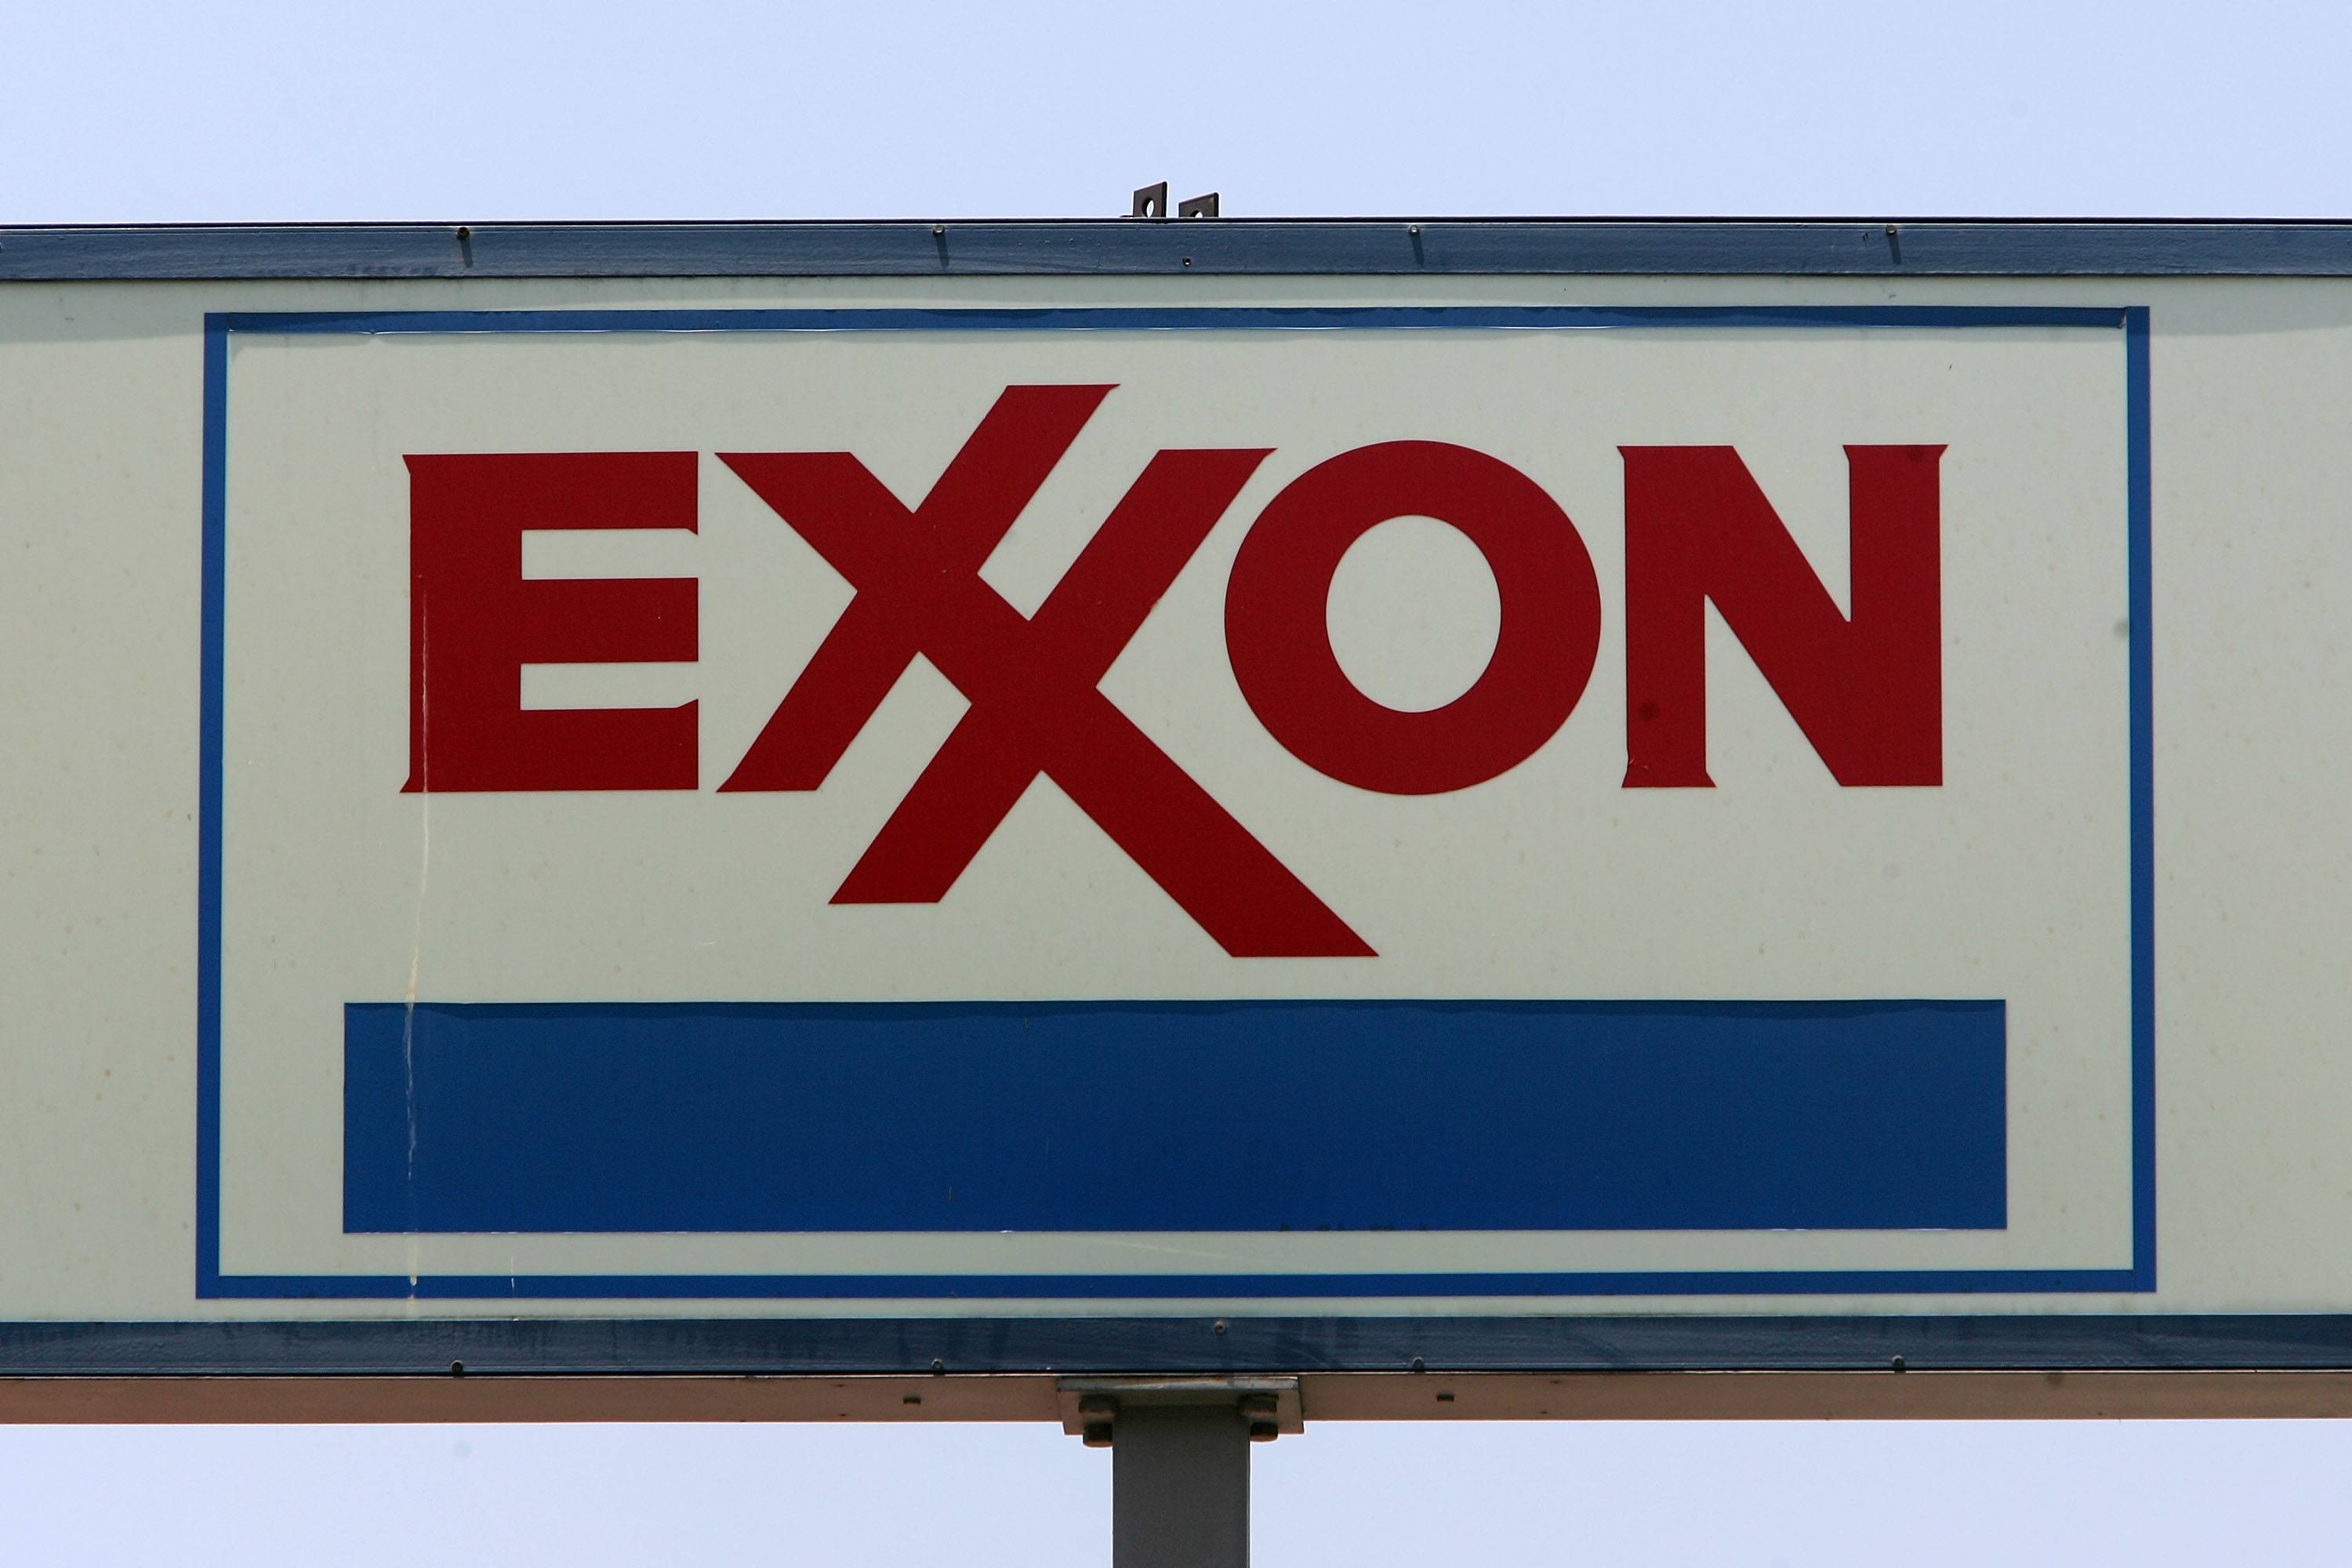 A sign advertises an Exxon gas station